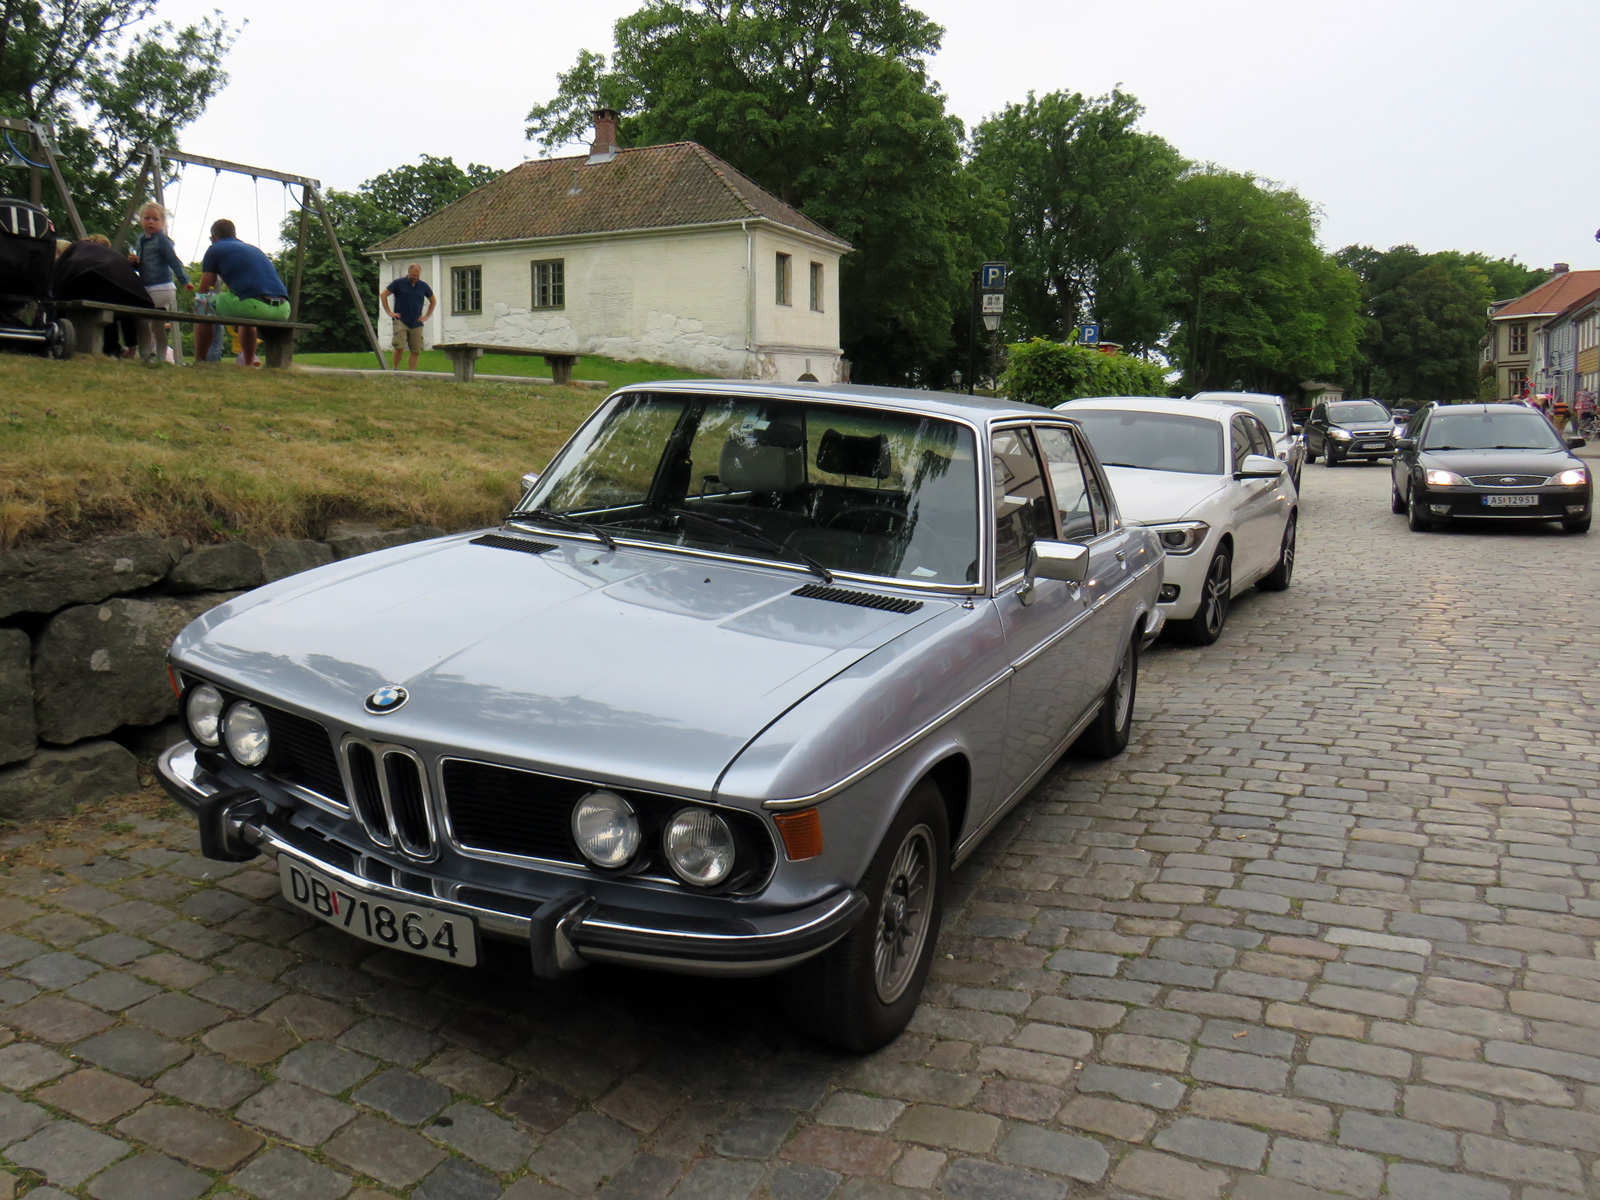 1975 Bmw 3.0 SA e3 new six classic cars parked norway